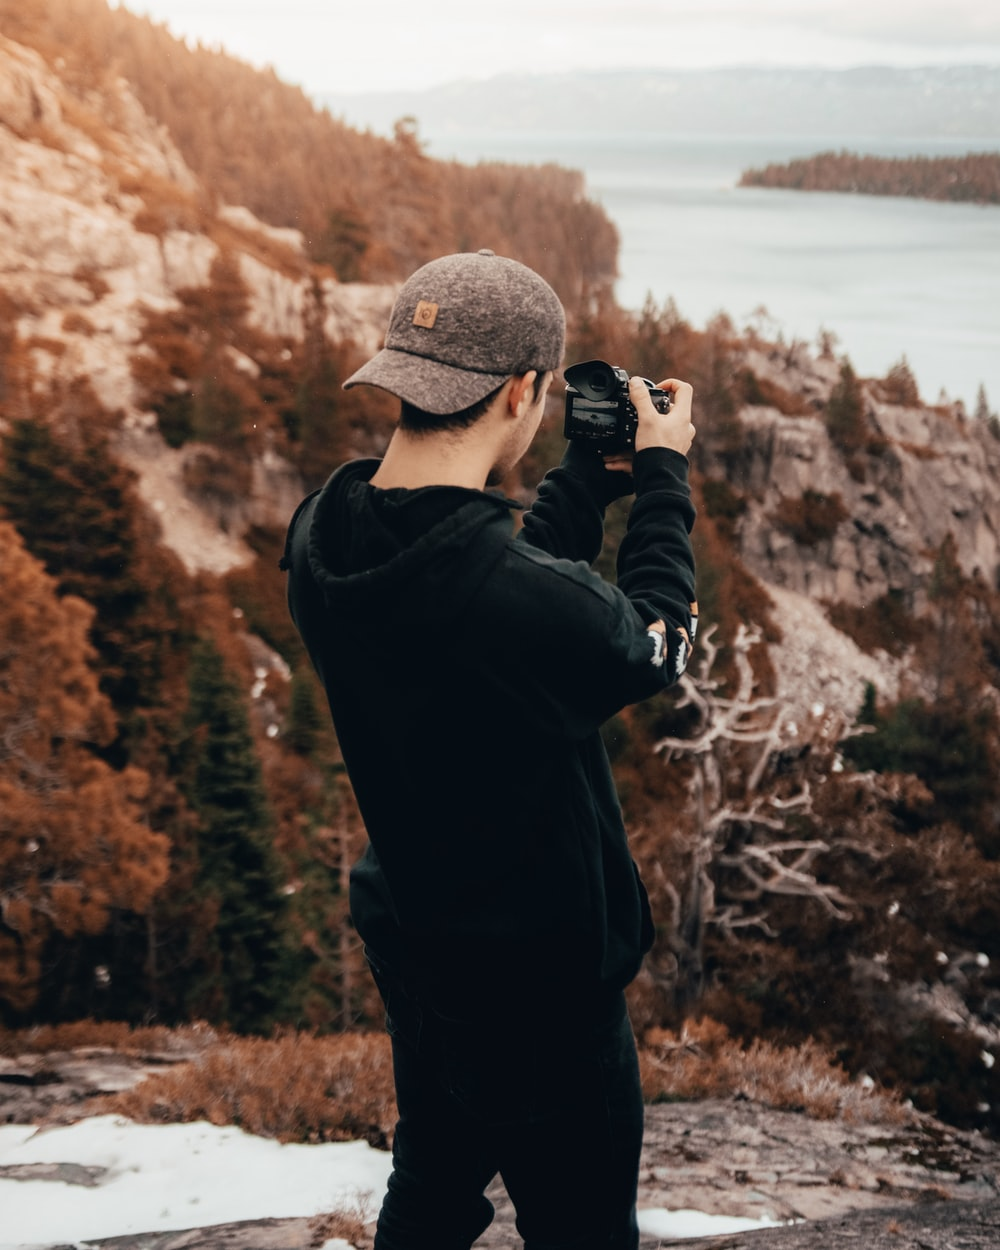 man taking photo in mountain during daytime